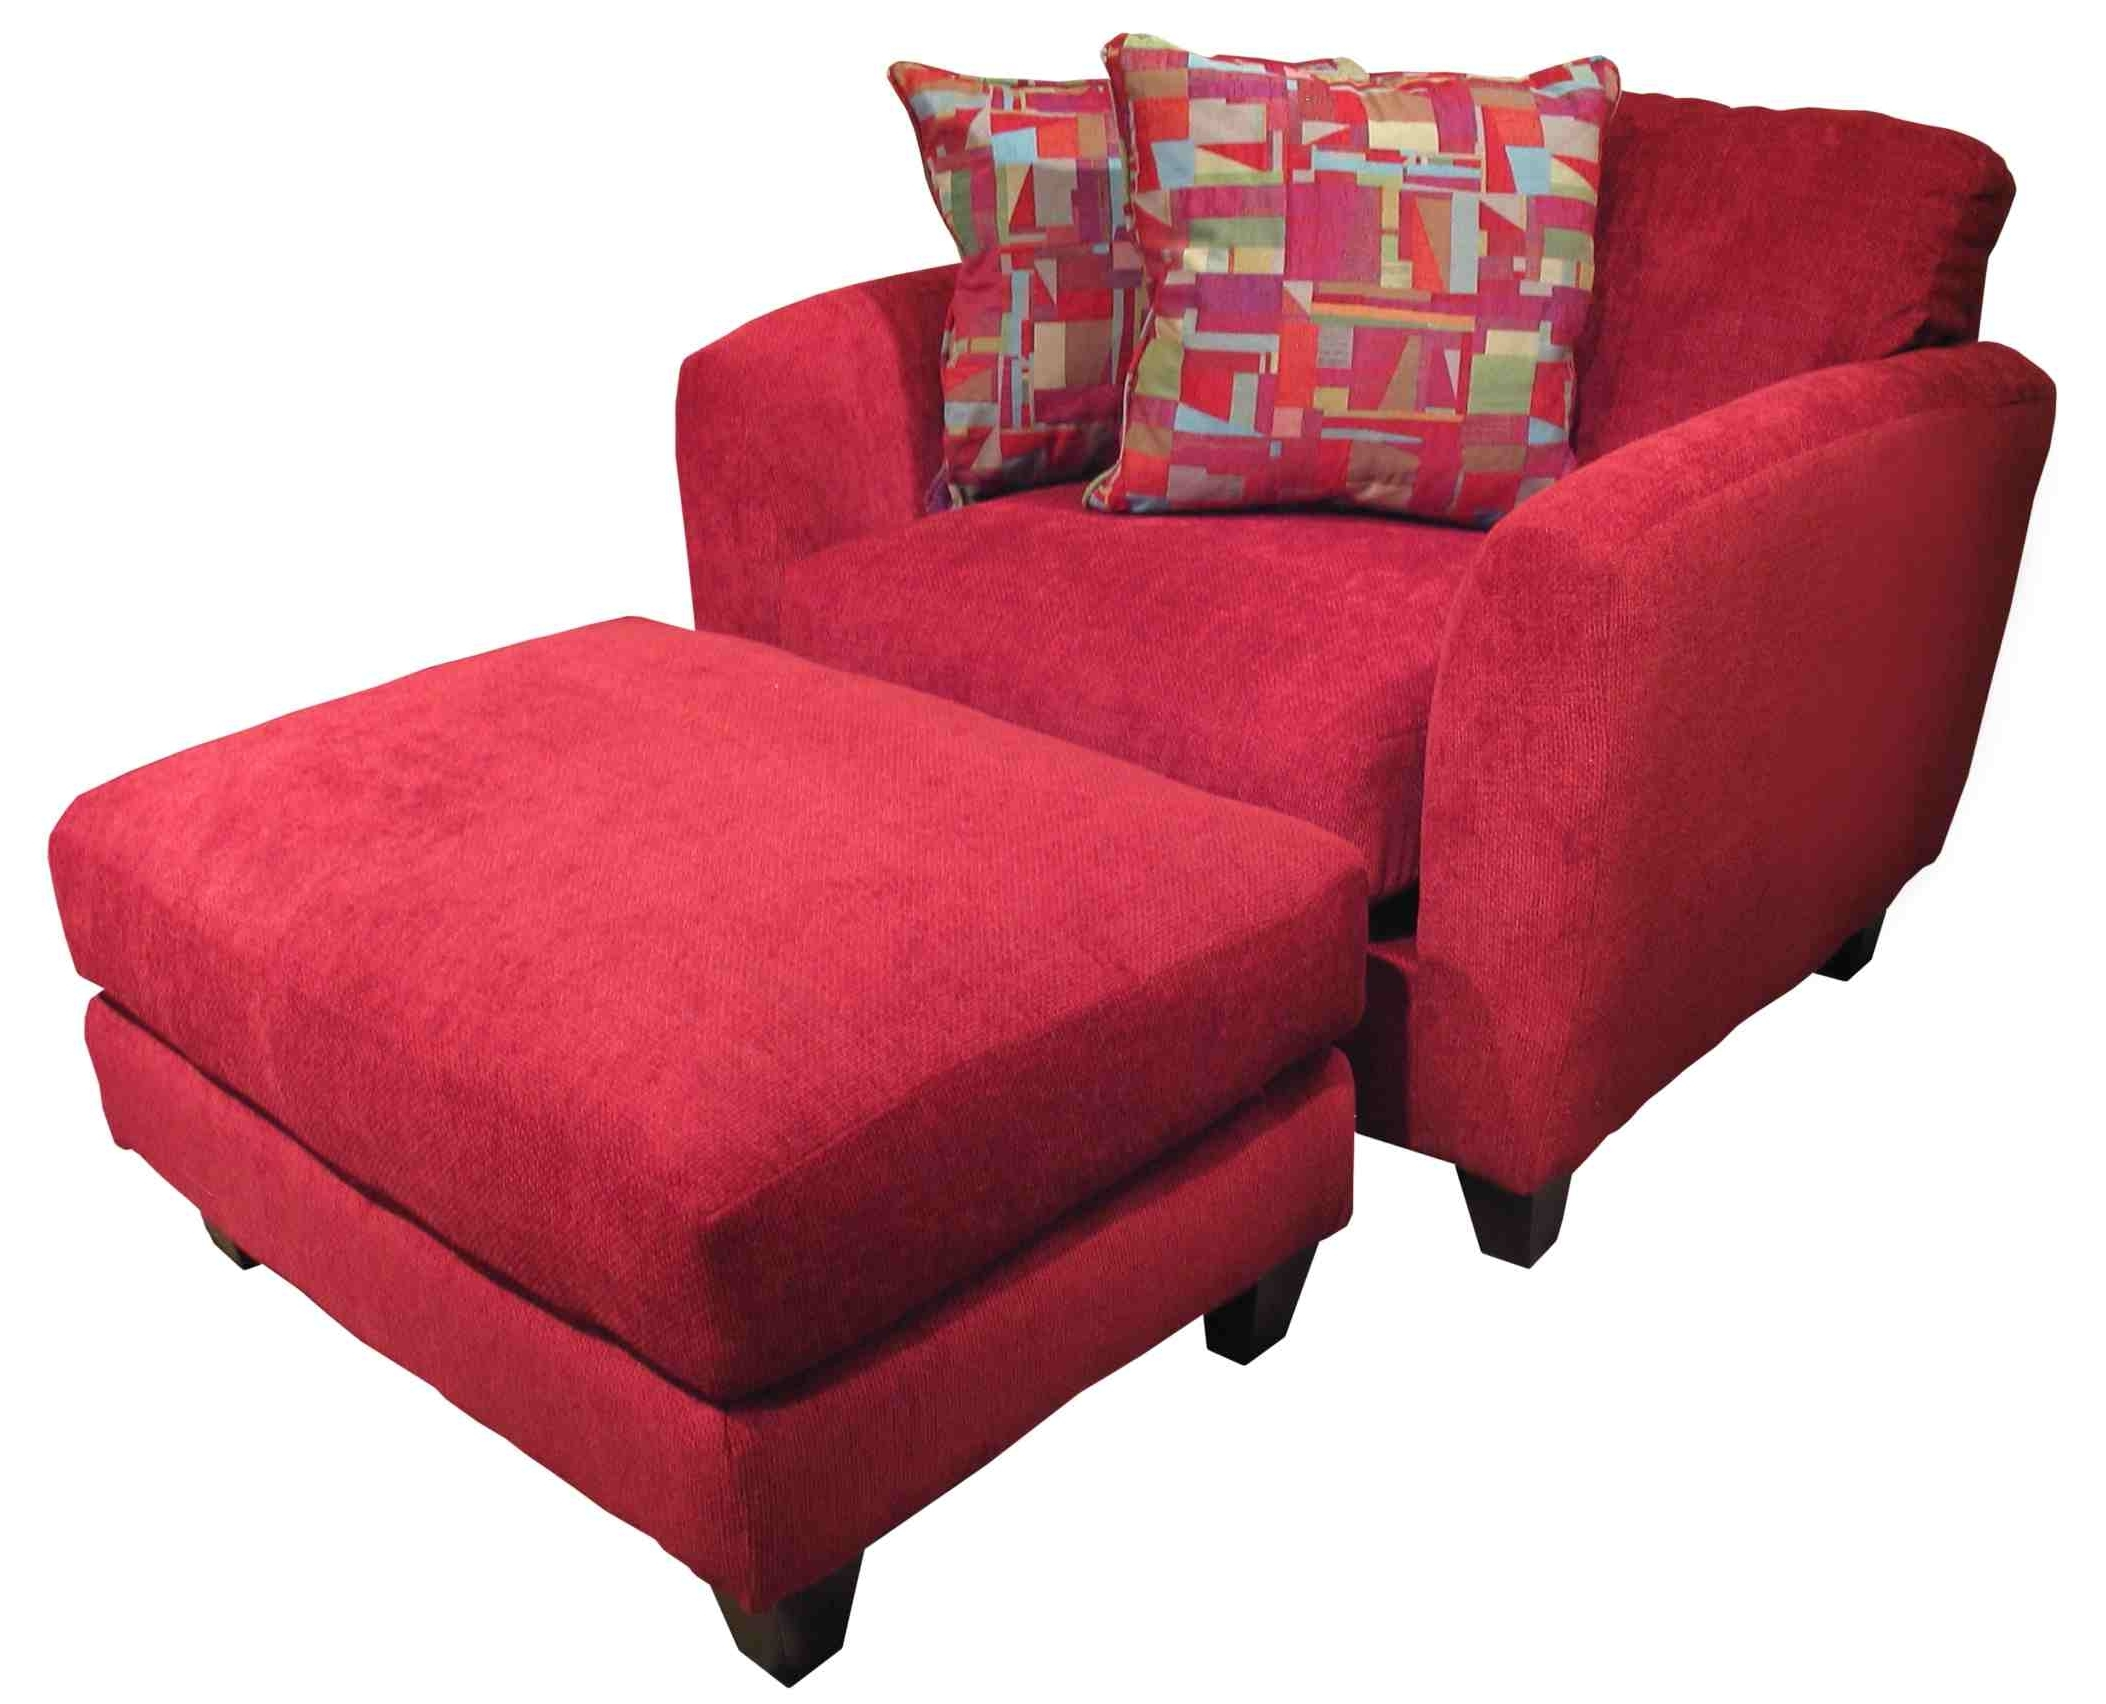 Overstuffed Chairs Ottoman — Modern Home Interiors : How To Intended For Preferred Chairs With Ottoman (View 19 of 20)